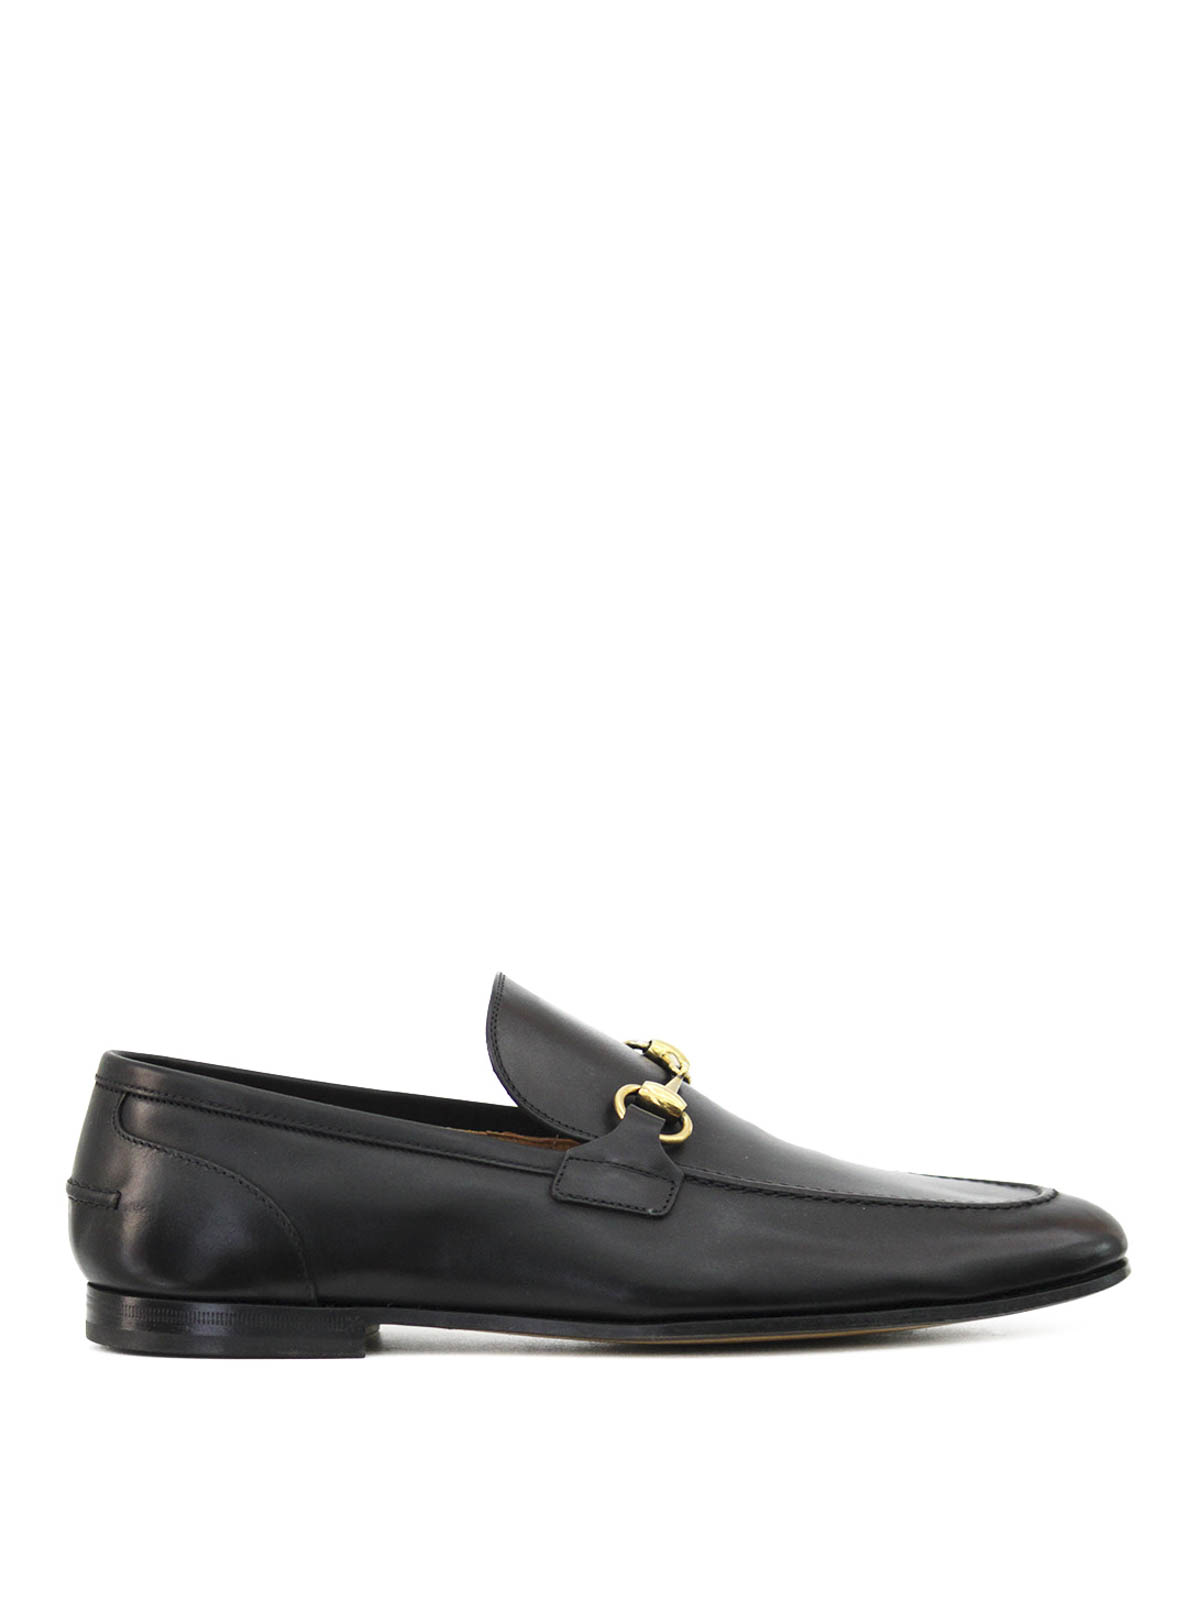 gucci leather horsebit loafers loafers slippers 406994 blm00 1000. Black Bedroom Furniture Sets. Home Design Ideas